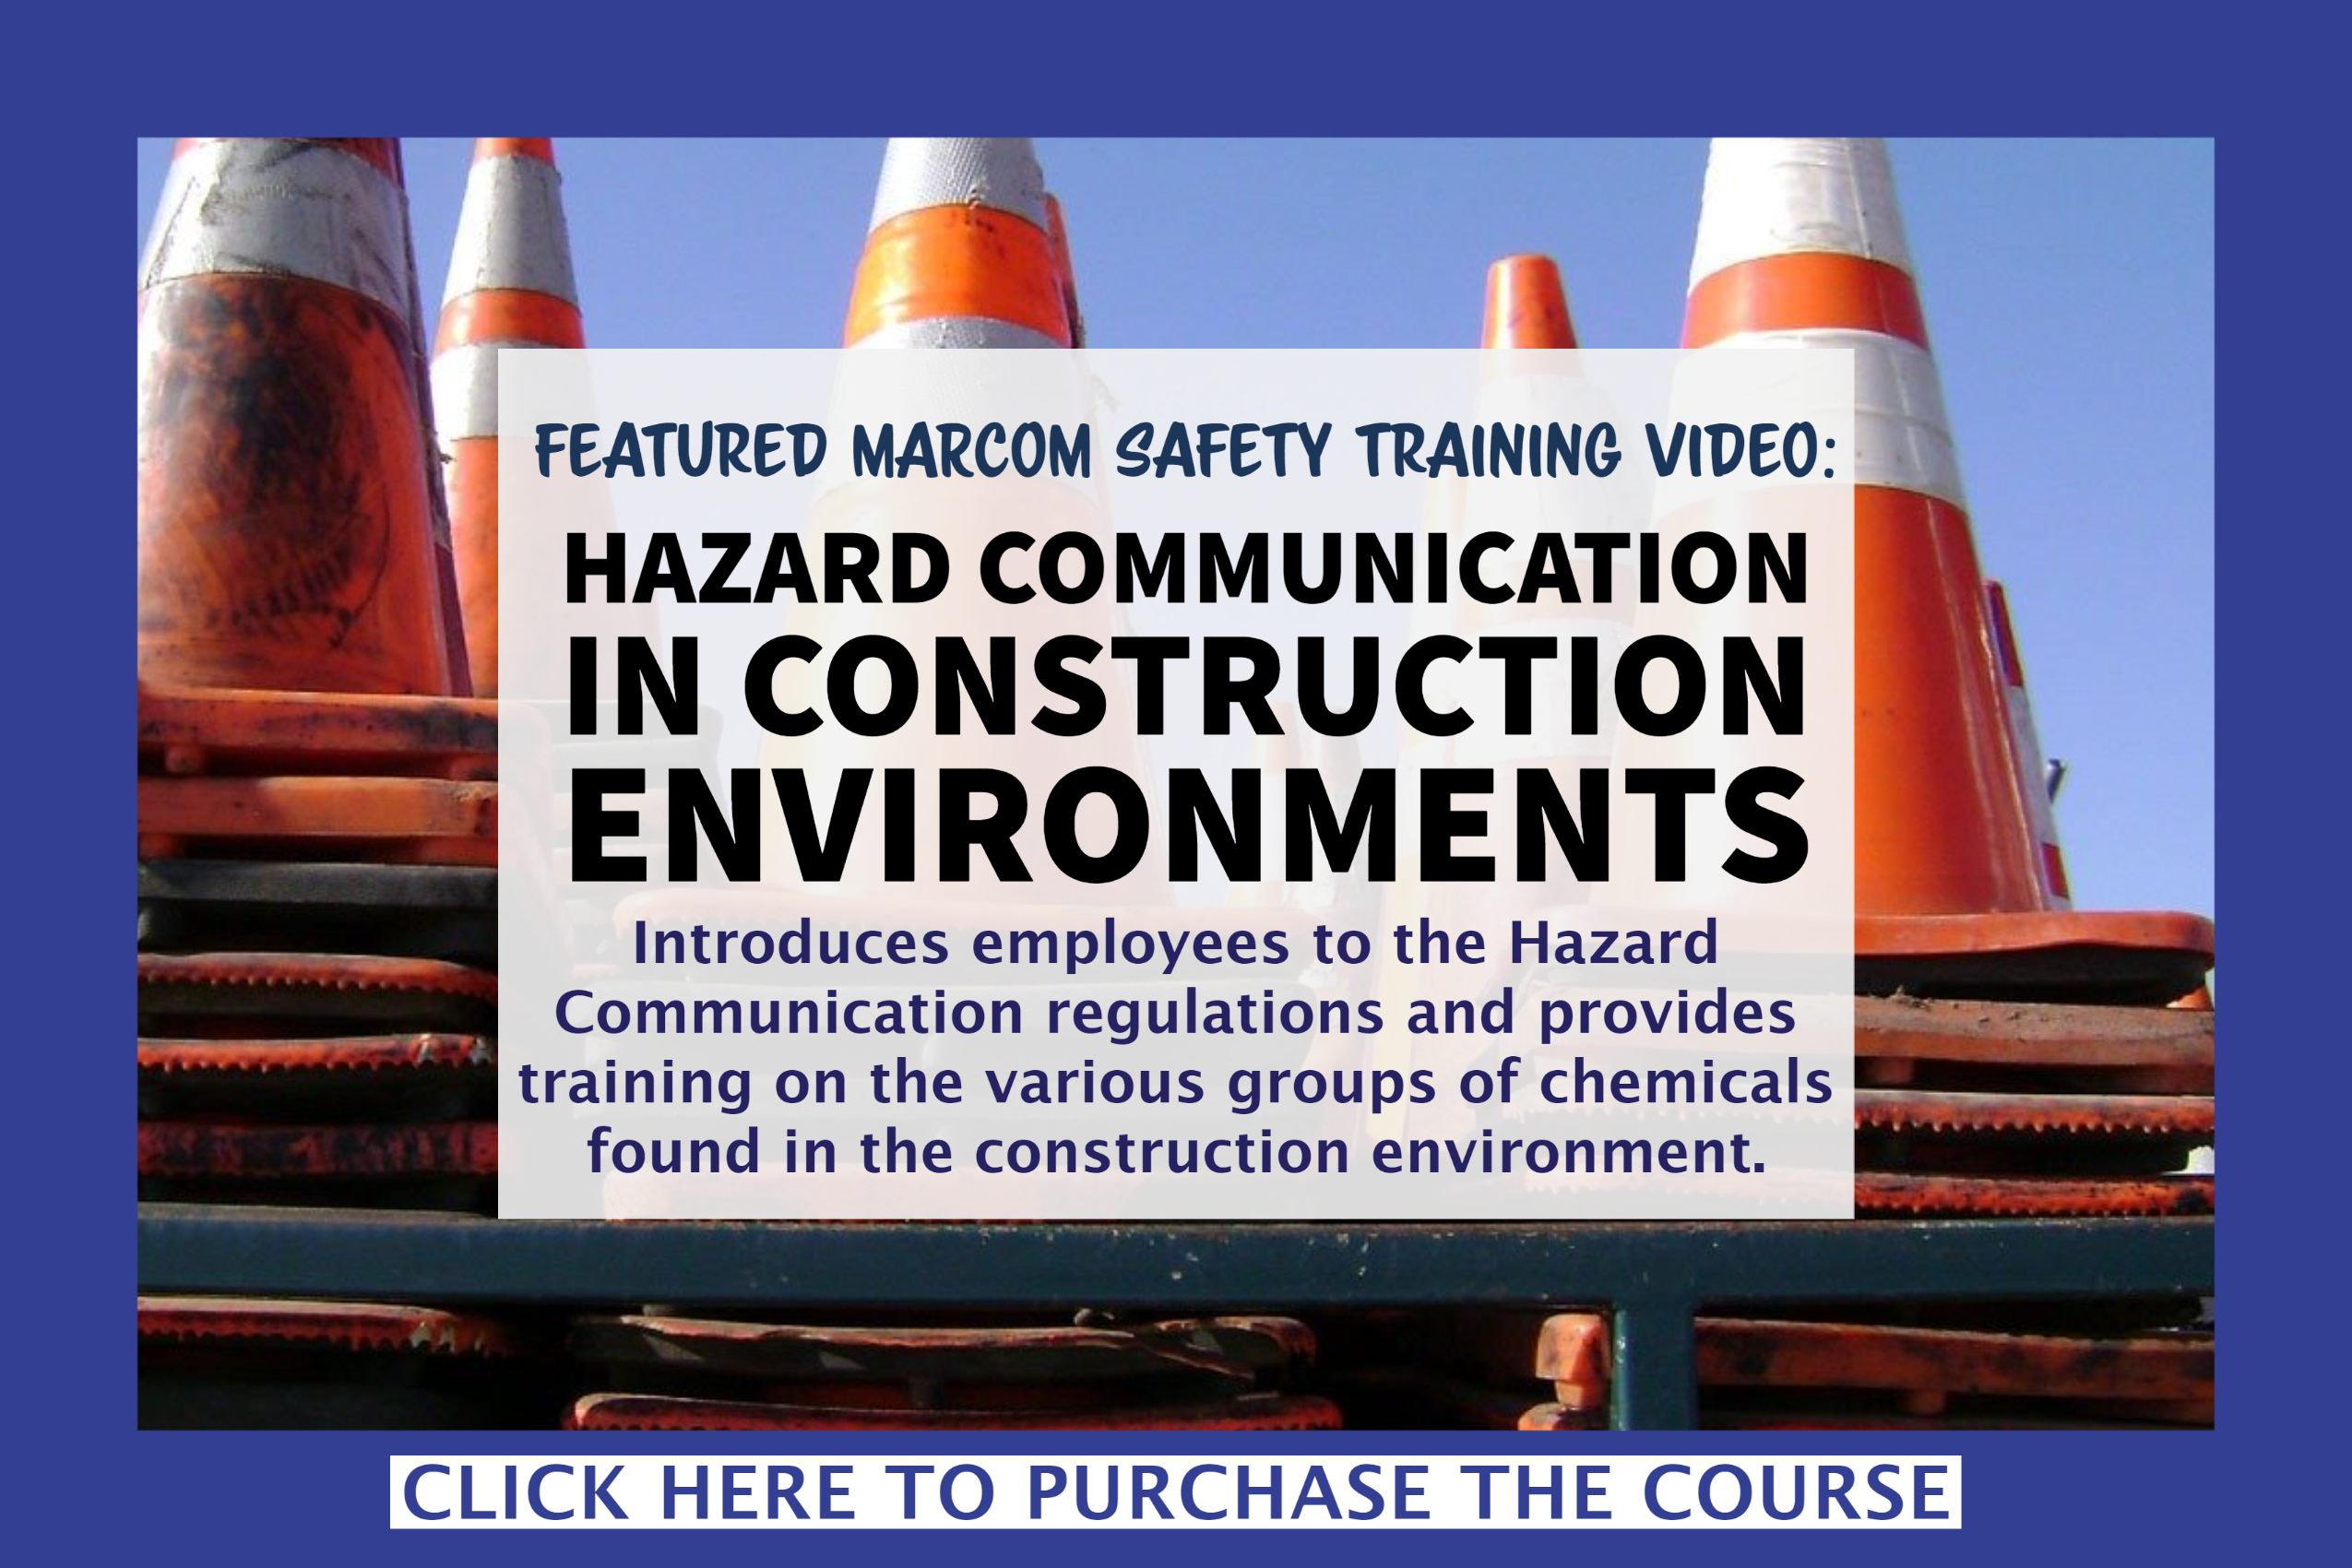 Introduces employees to the Hazard Communication regulations and provides training on the various groups of chemicals found in the construction environment.